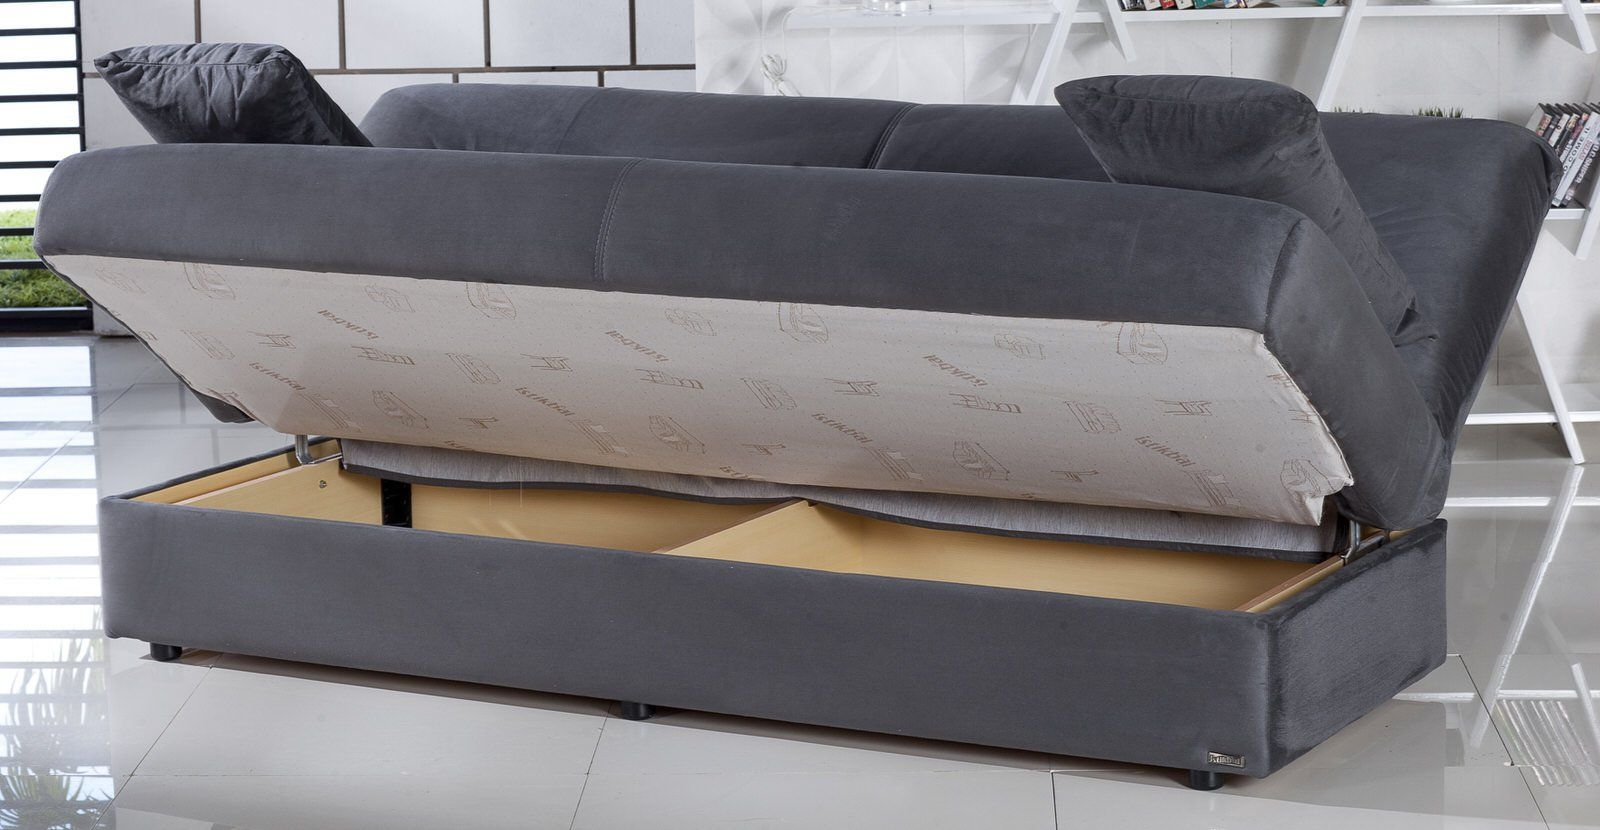 Convertible Sofa With Storage | Sofa Table in 2019 ...